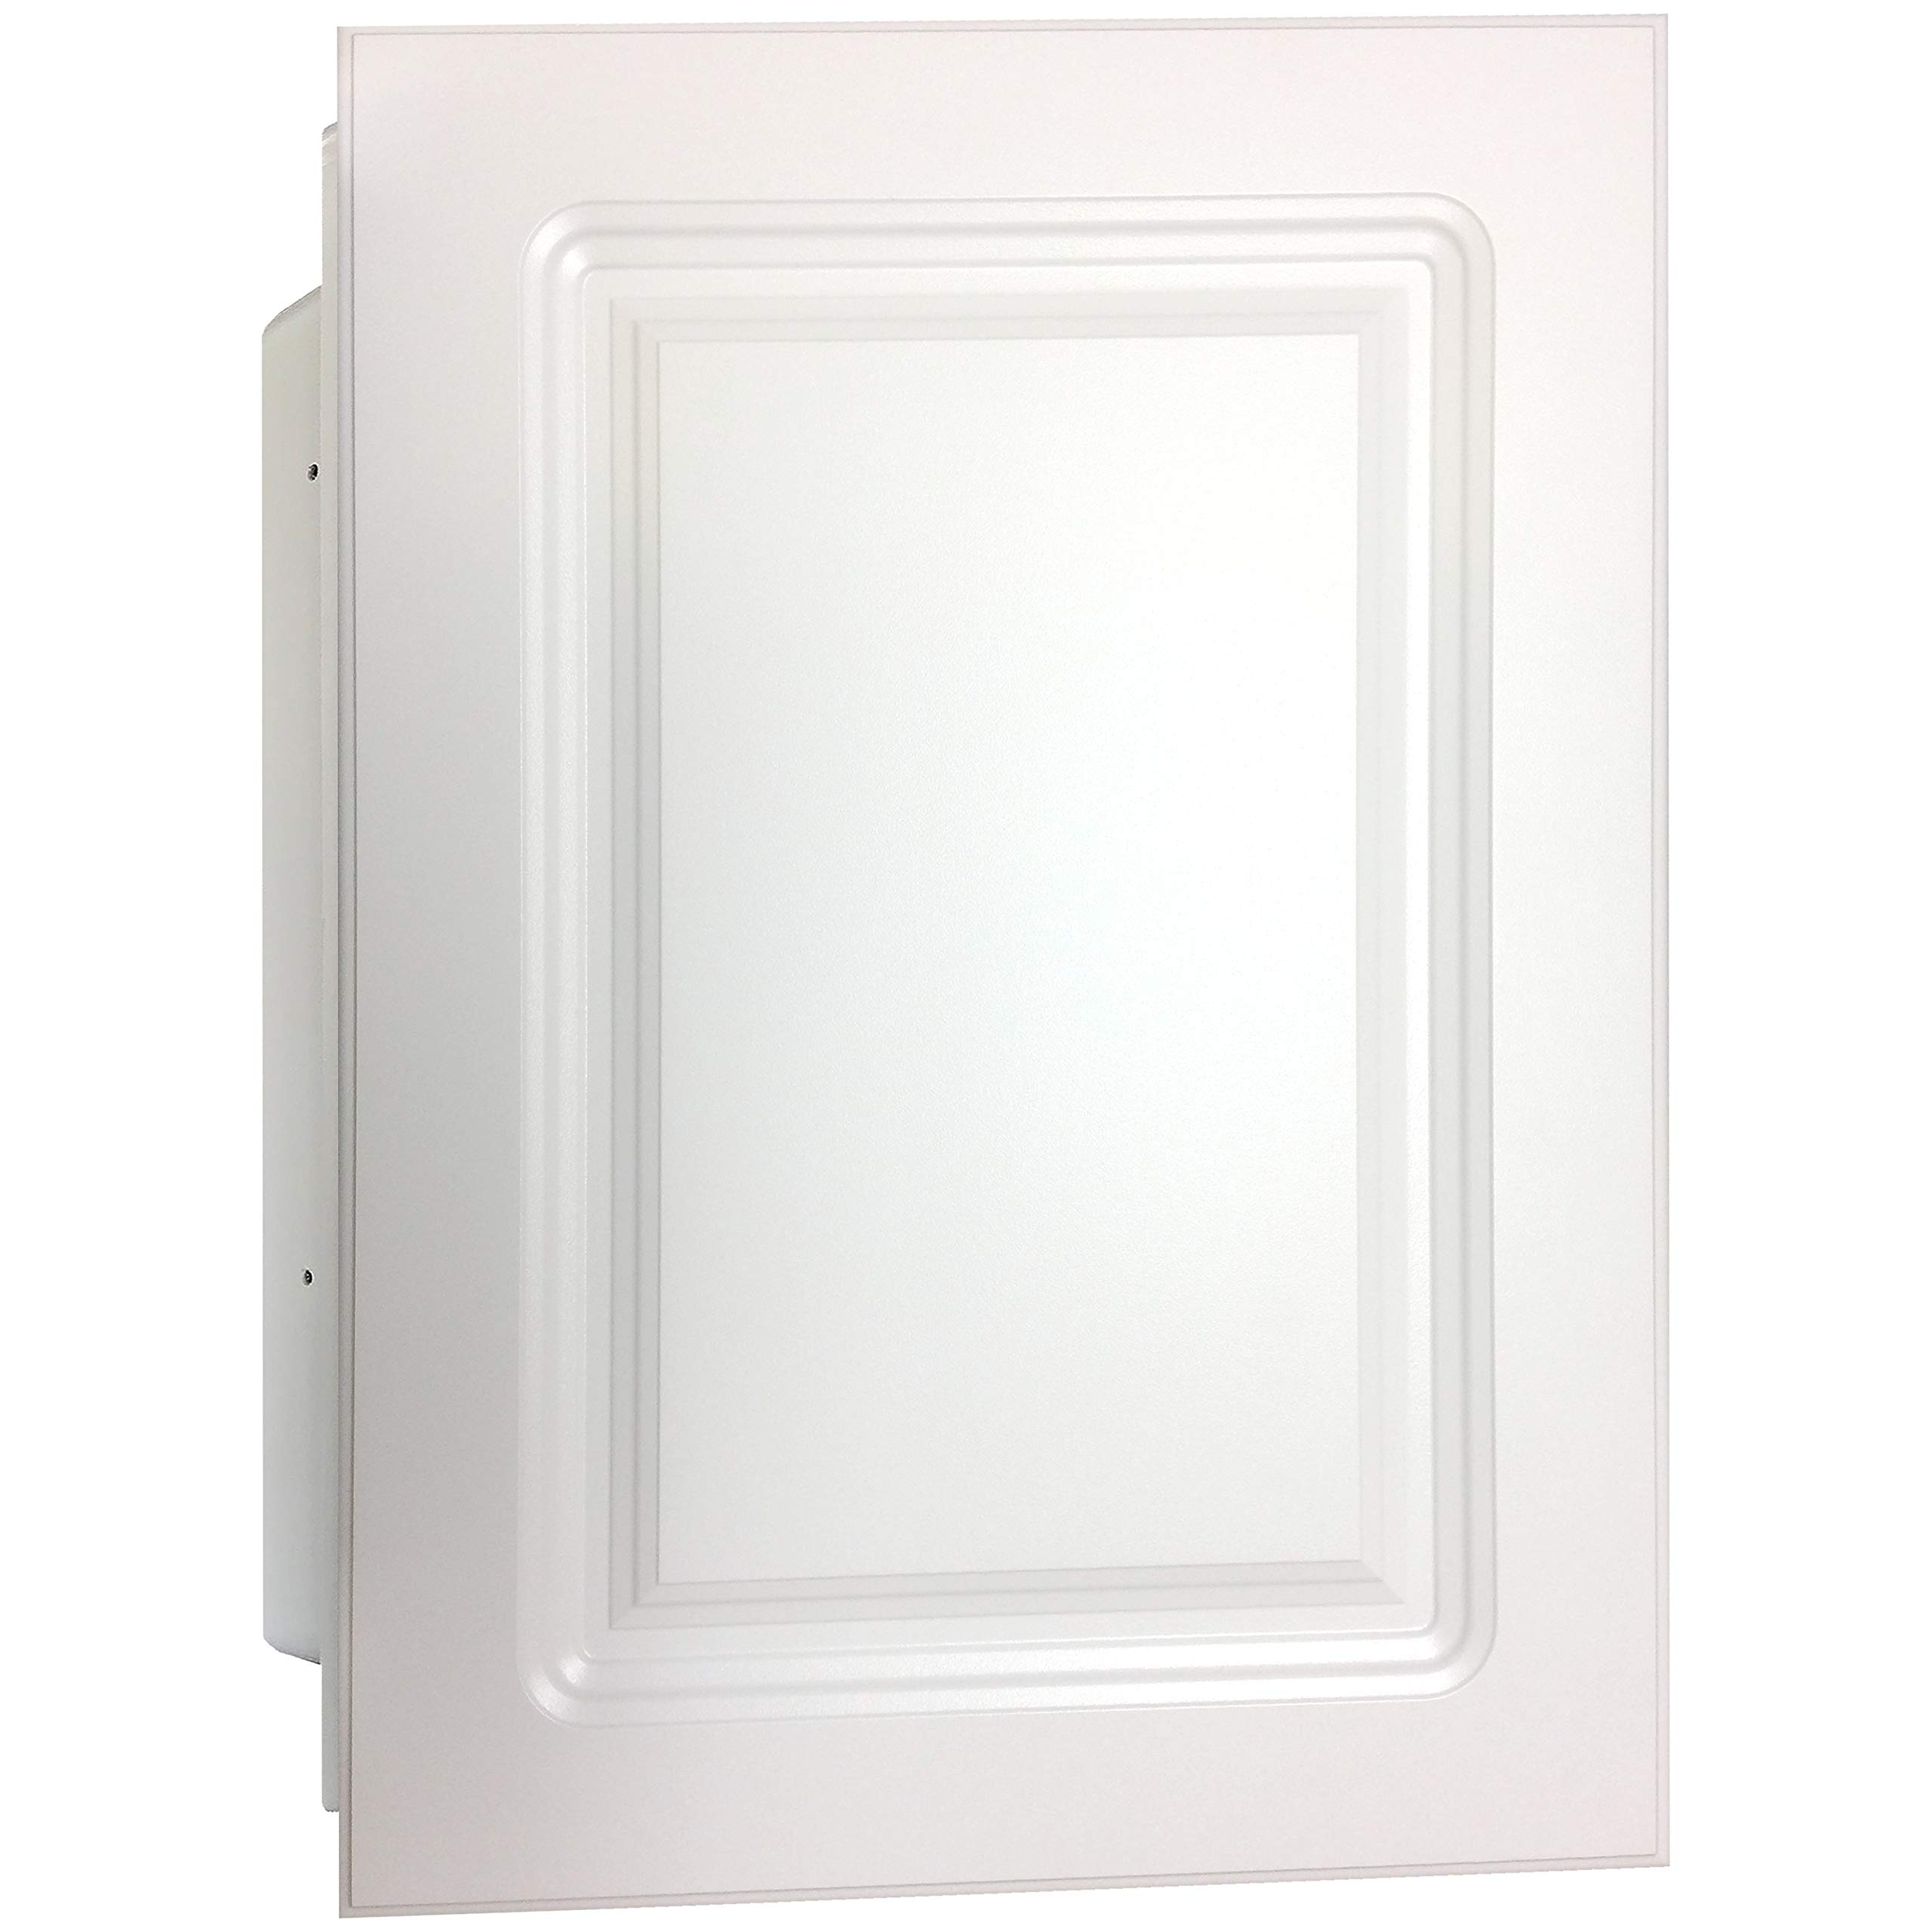 Mirrors and More Recessed White Raised MDF Wood Panel Medicine Cabinet | Fixed Shelf | Bathroom | Kitchen | 16'' x 22''